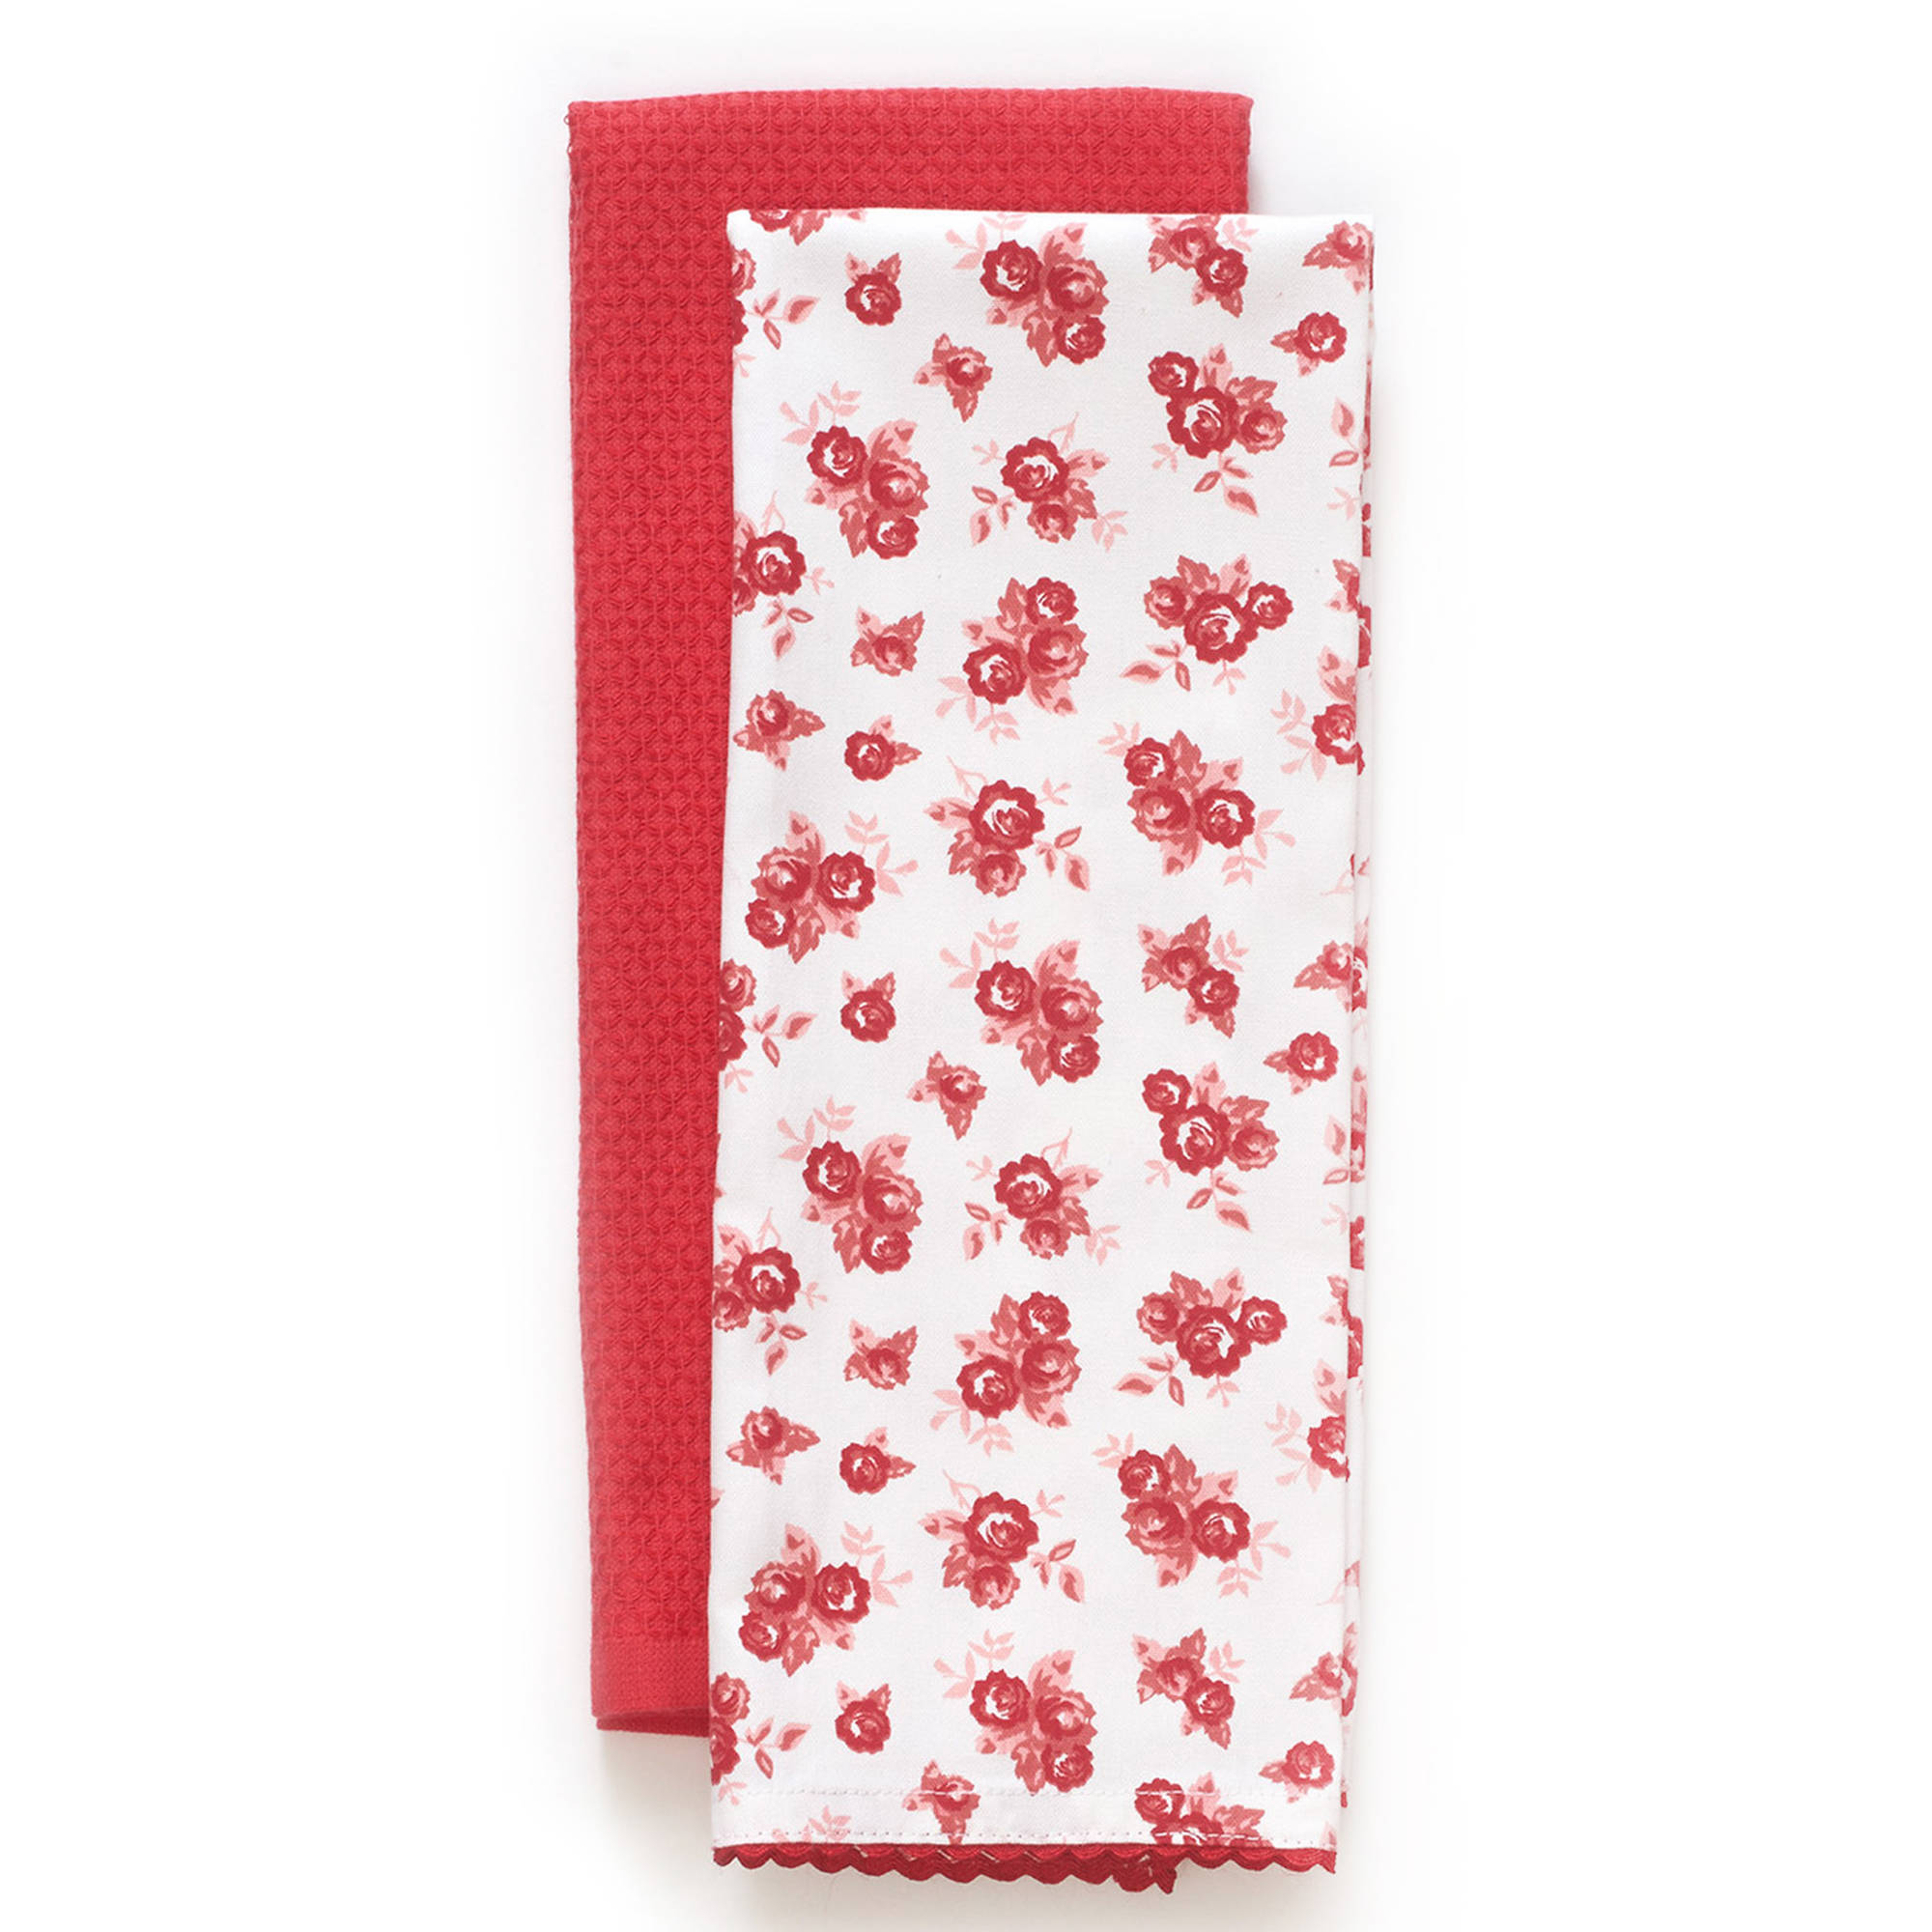 The Pioneer Woman Wild Rose Kitchen Towel, Pack of 2